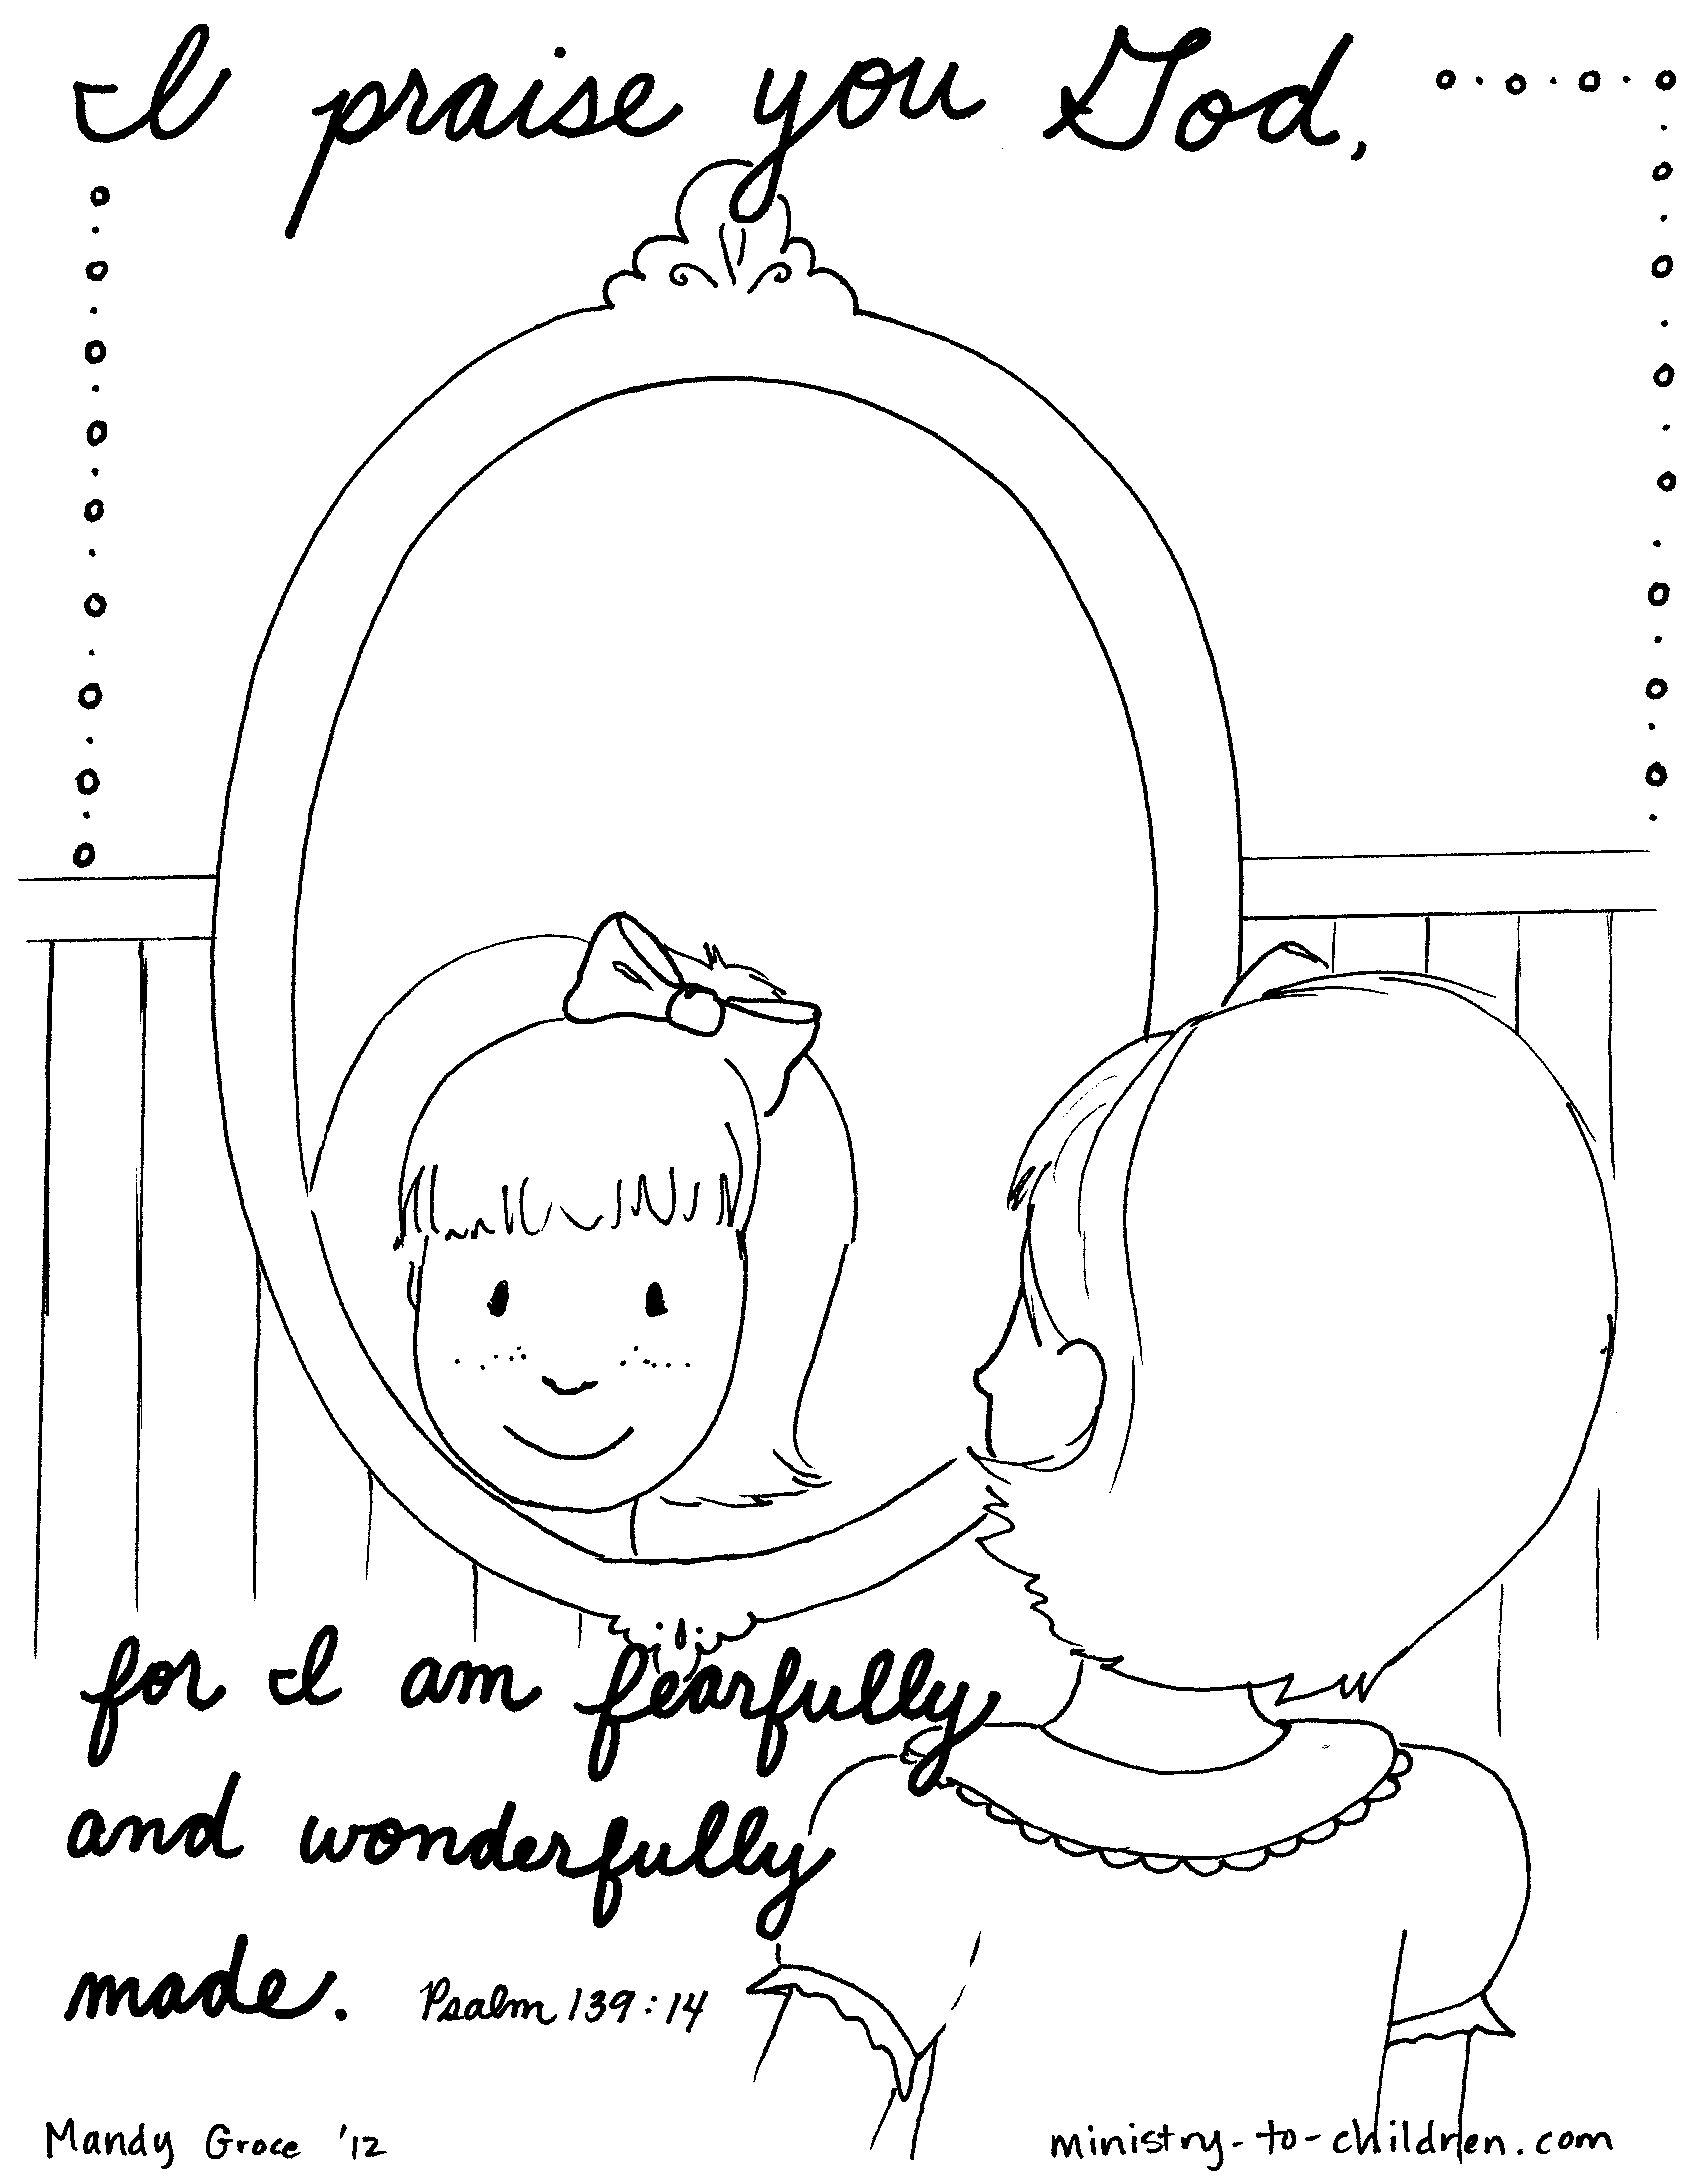 psalm 139 coloring page psalm 139 coloring page awesome coloring pages for kids by coloring 139 psalm page